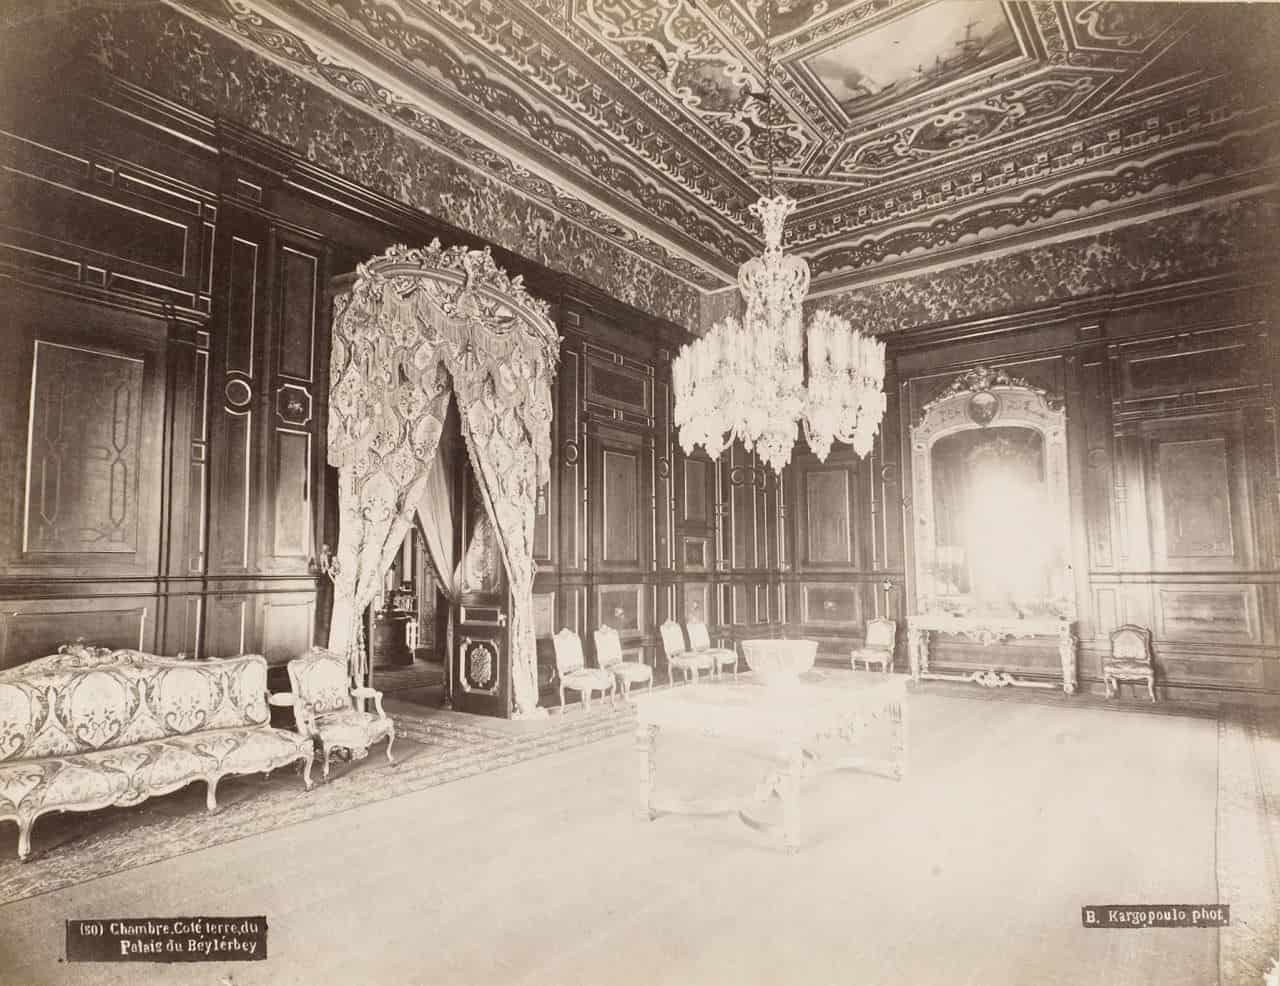 Beylerbeyi Palace picture in 1875